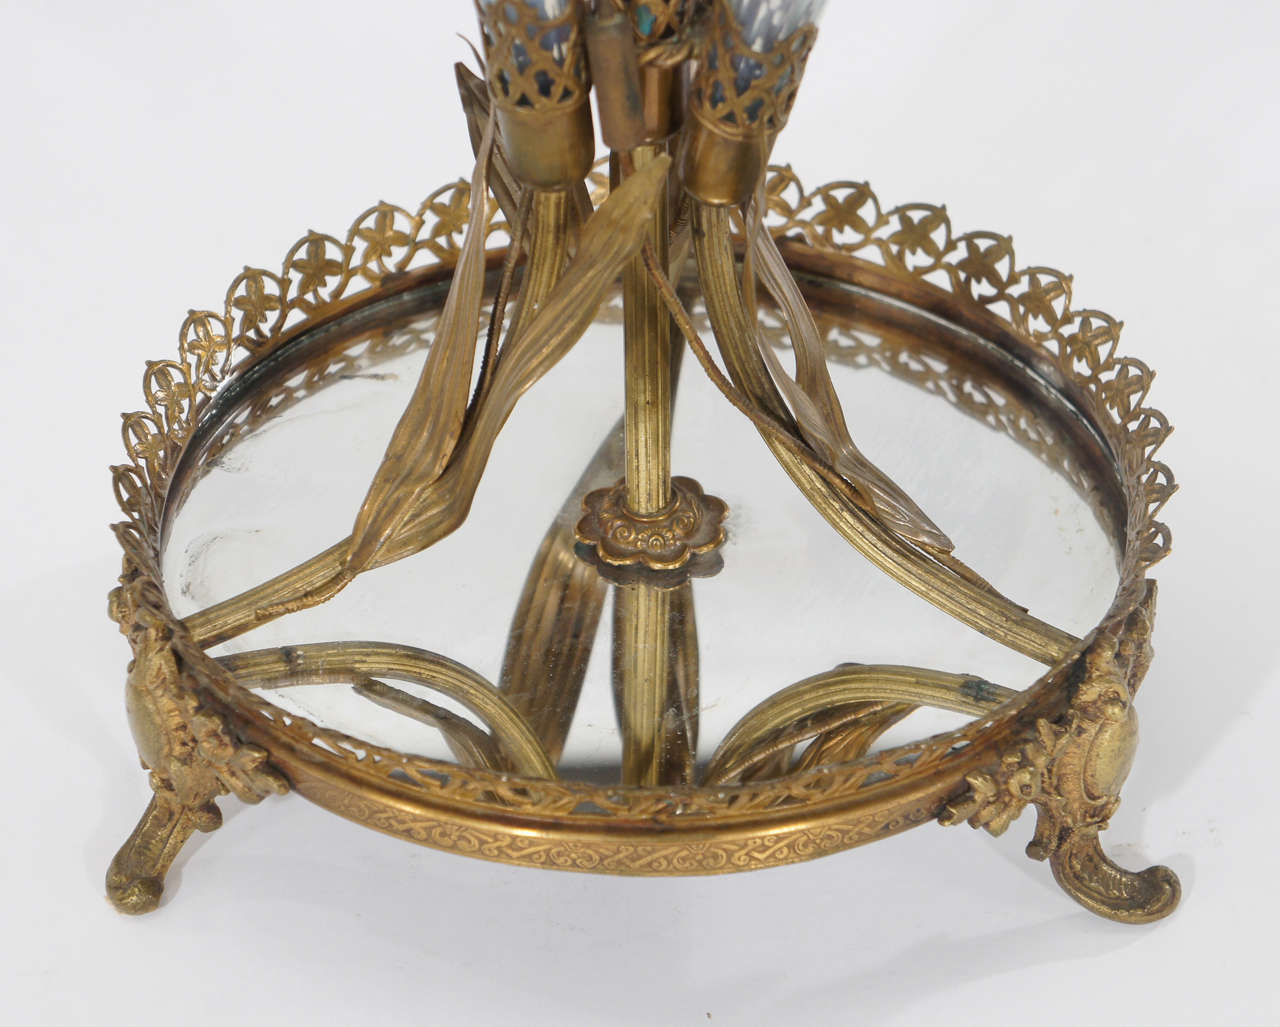 Outstanding Art Nouveau Calla Lily 19th Century Epergne on Plateau For Sale 3